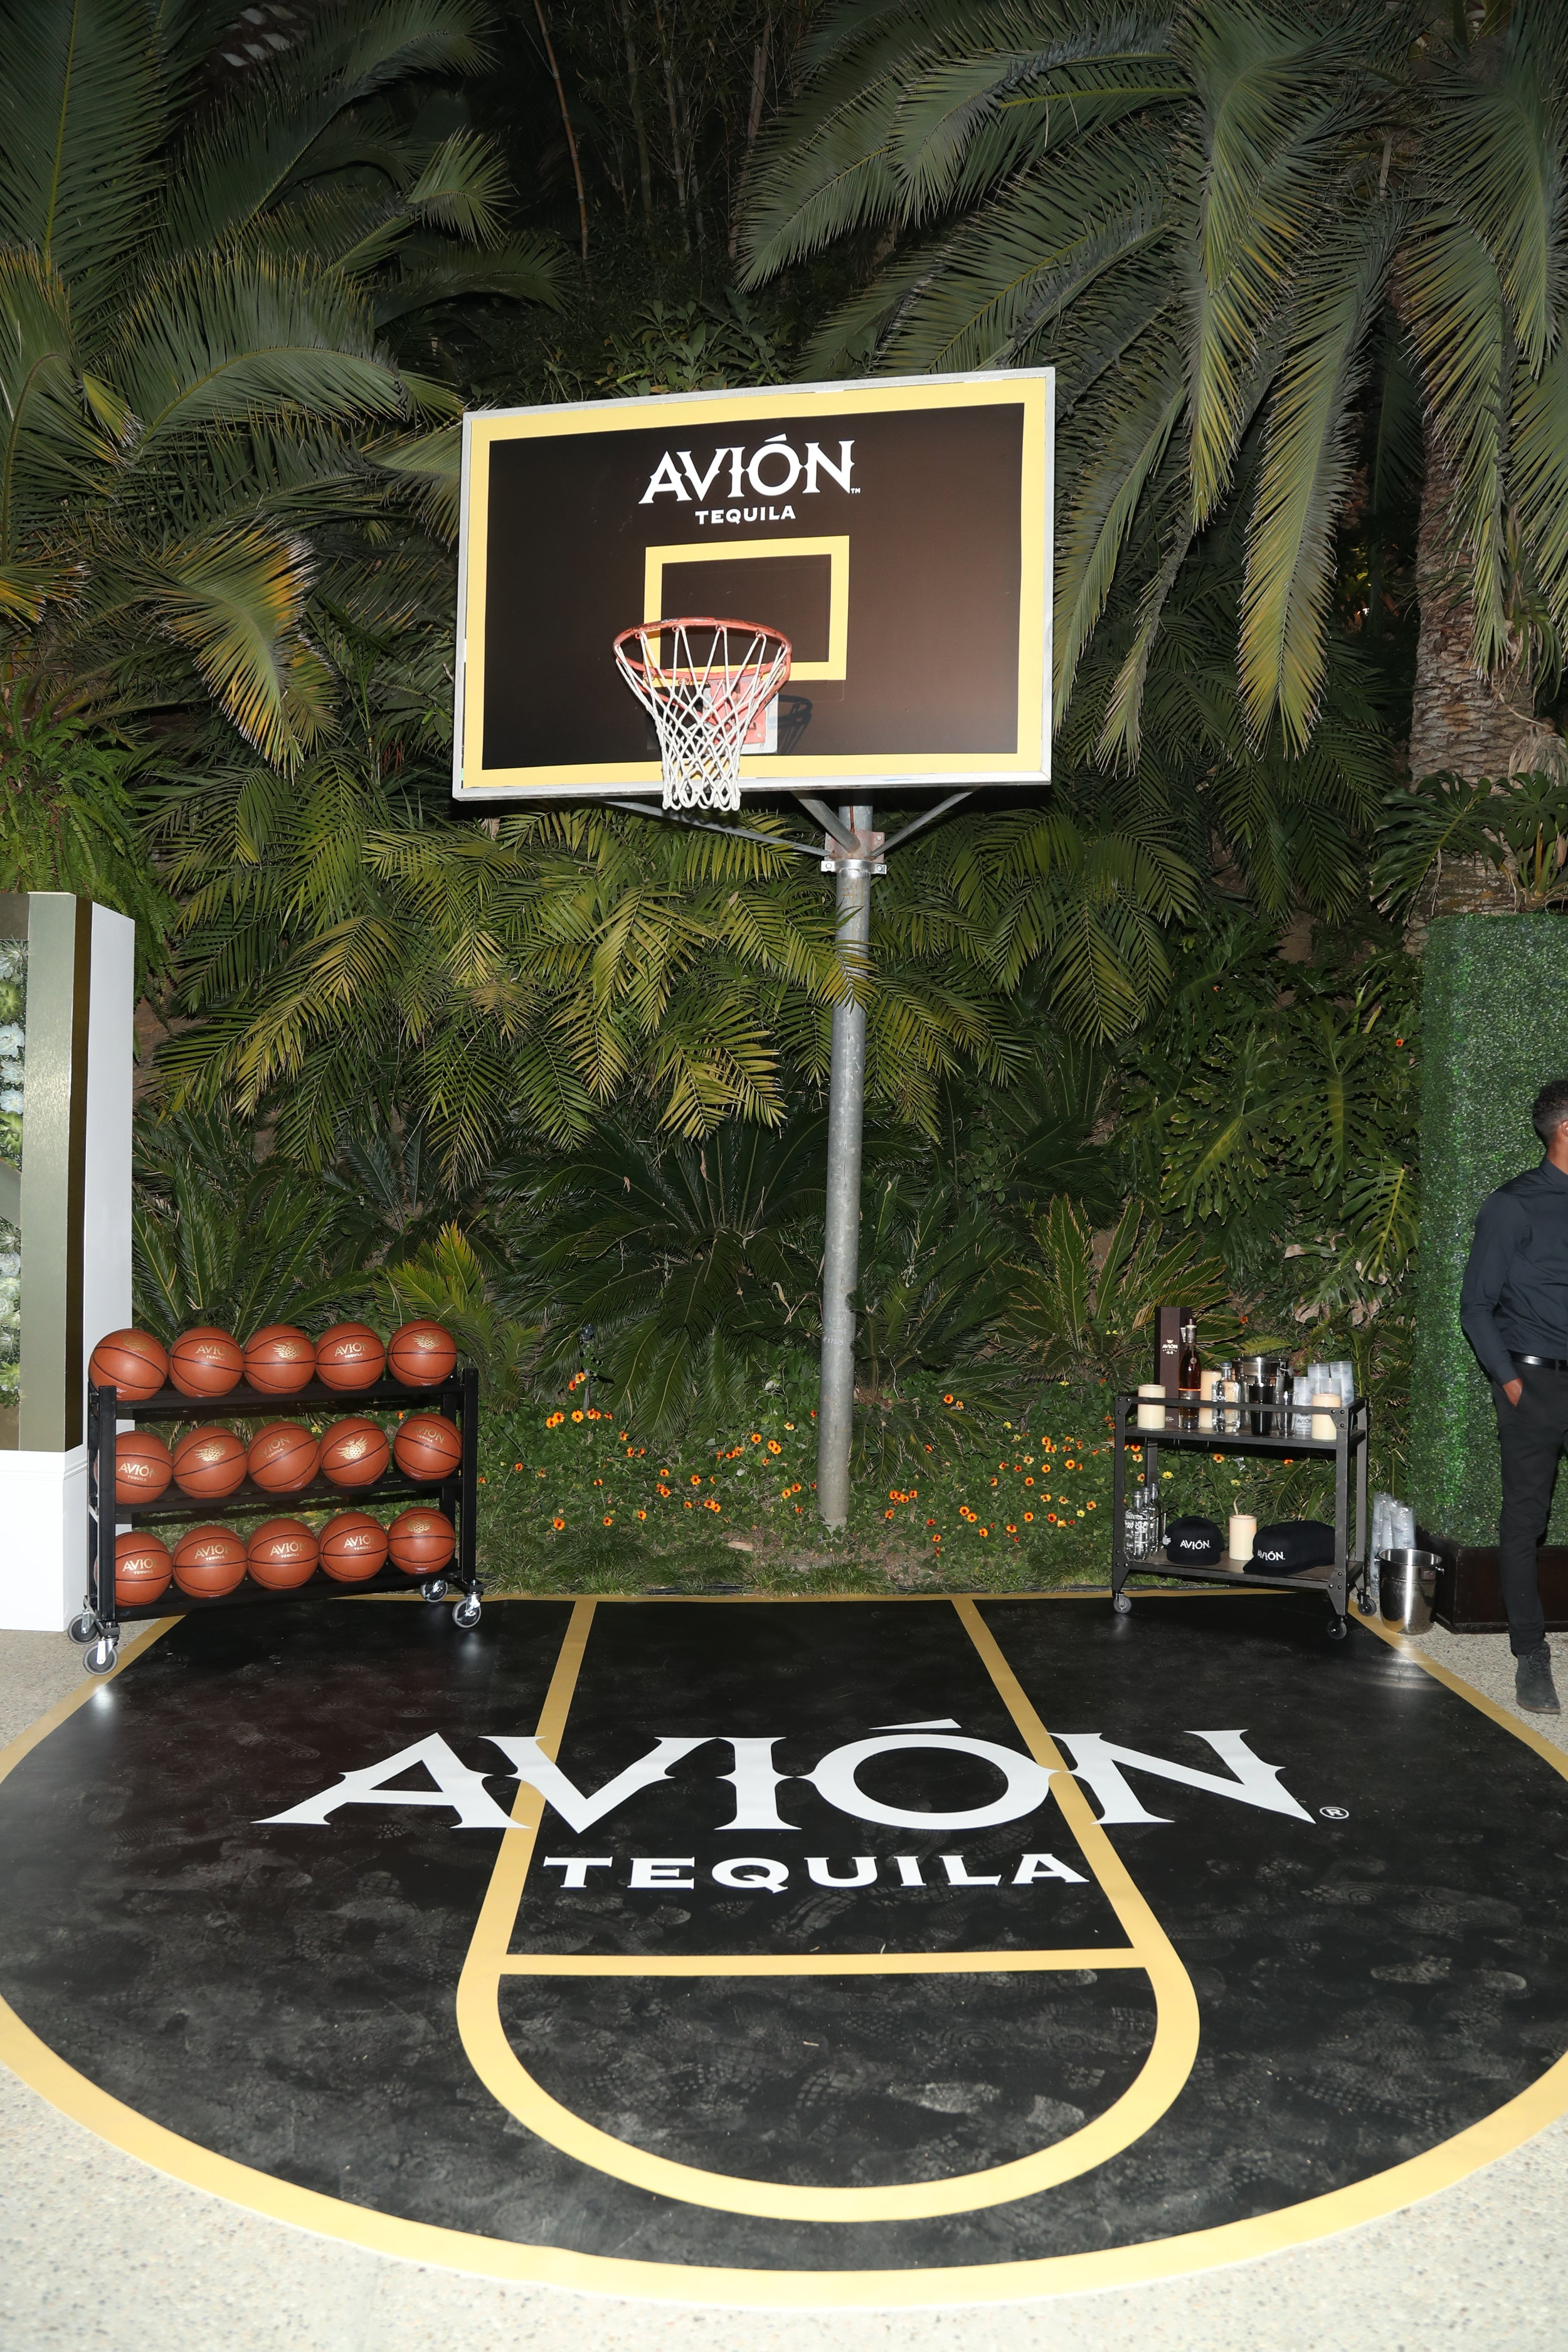 Sponsor, Tequila Avión activation at the event